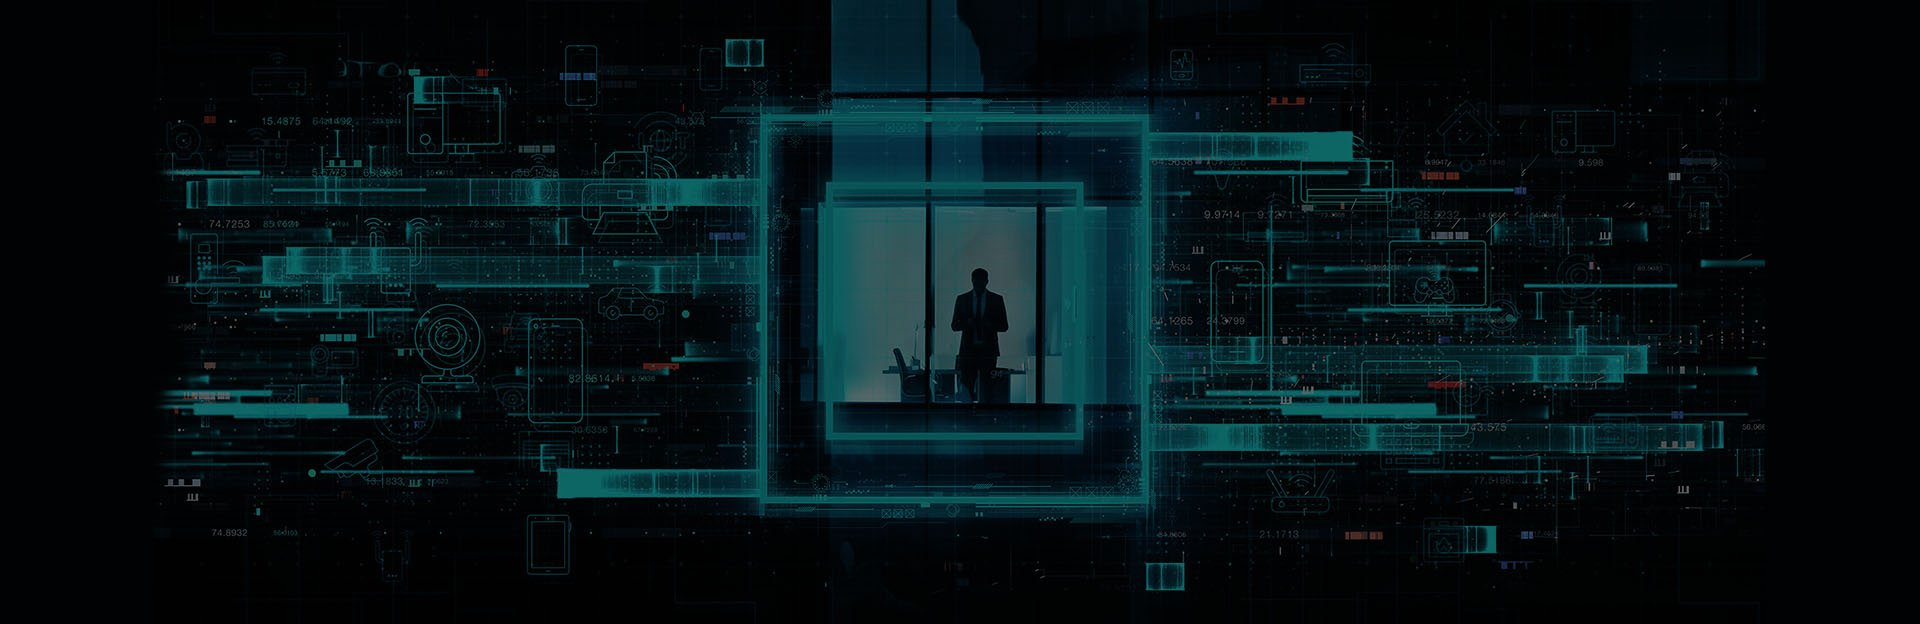 Even Prior to the Pandemic and Work-From-Home, Many Organizations Were Bolstering Cyber Security